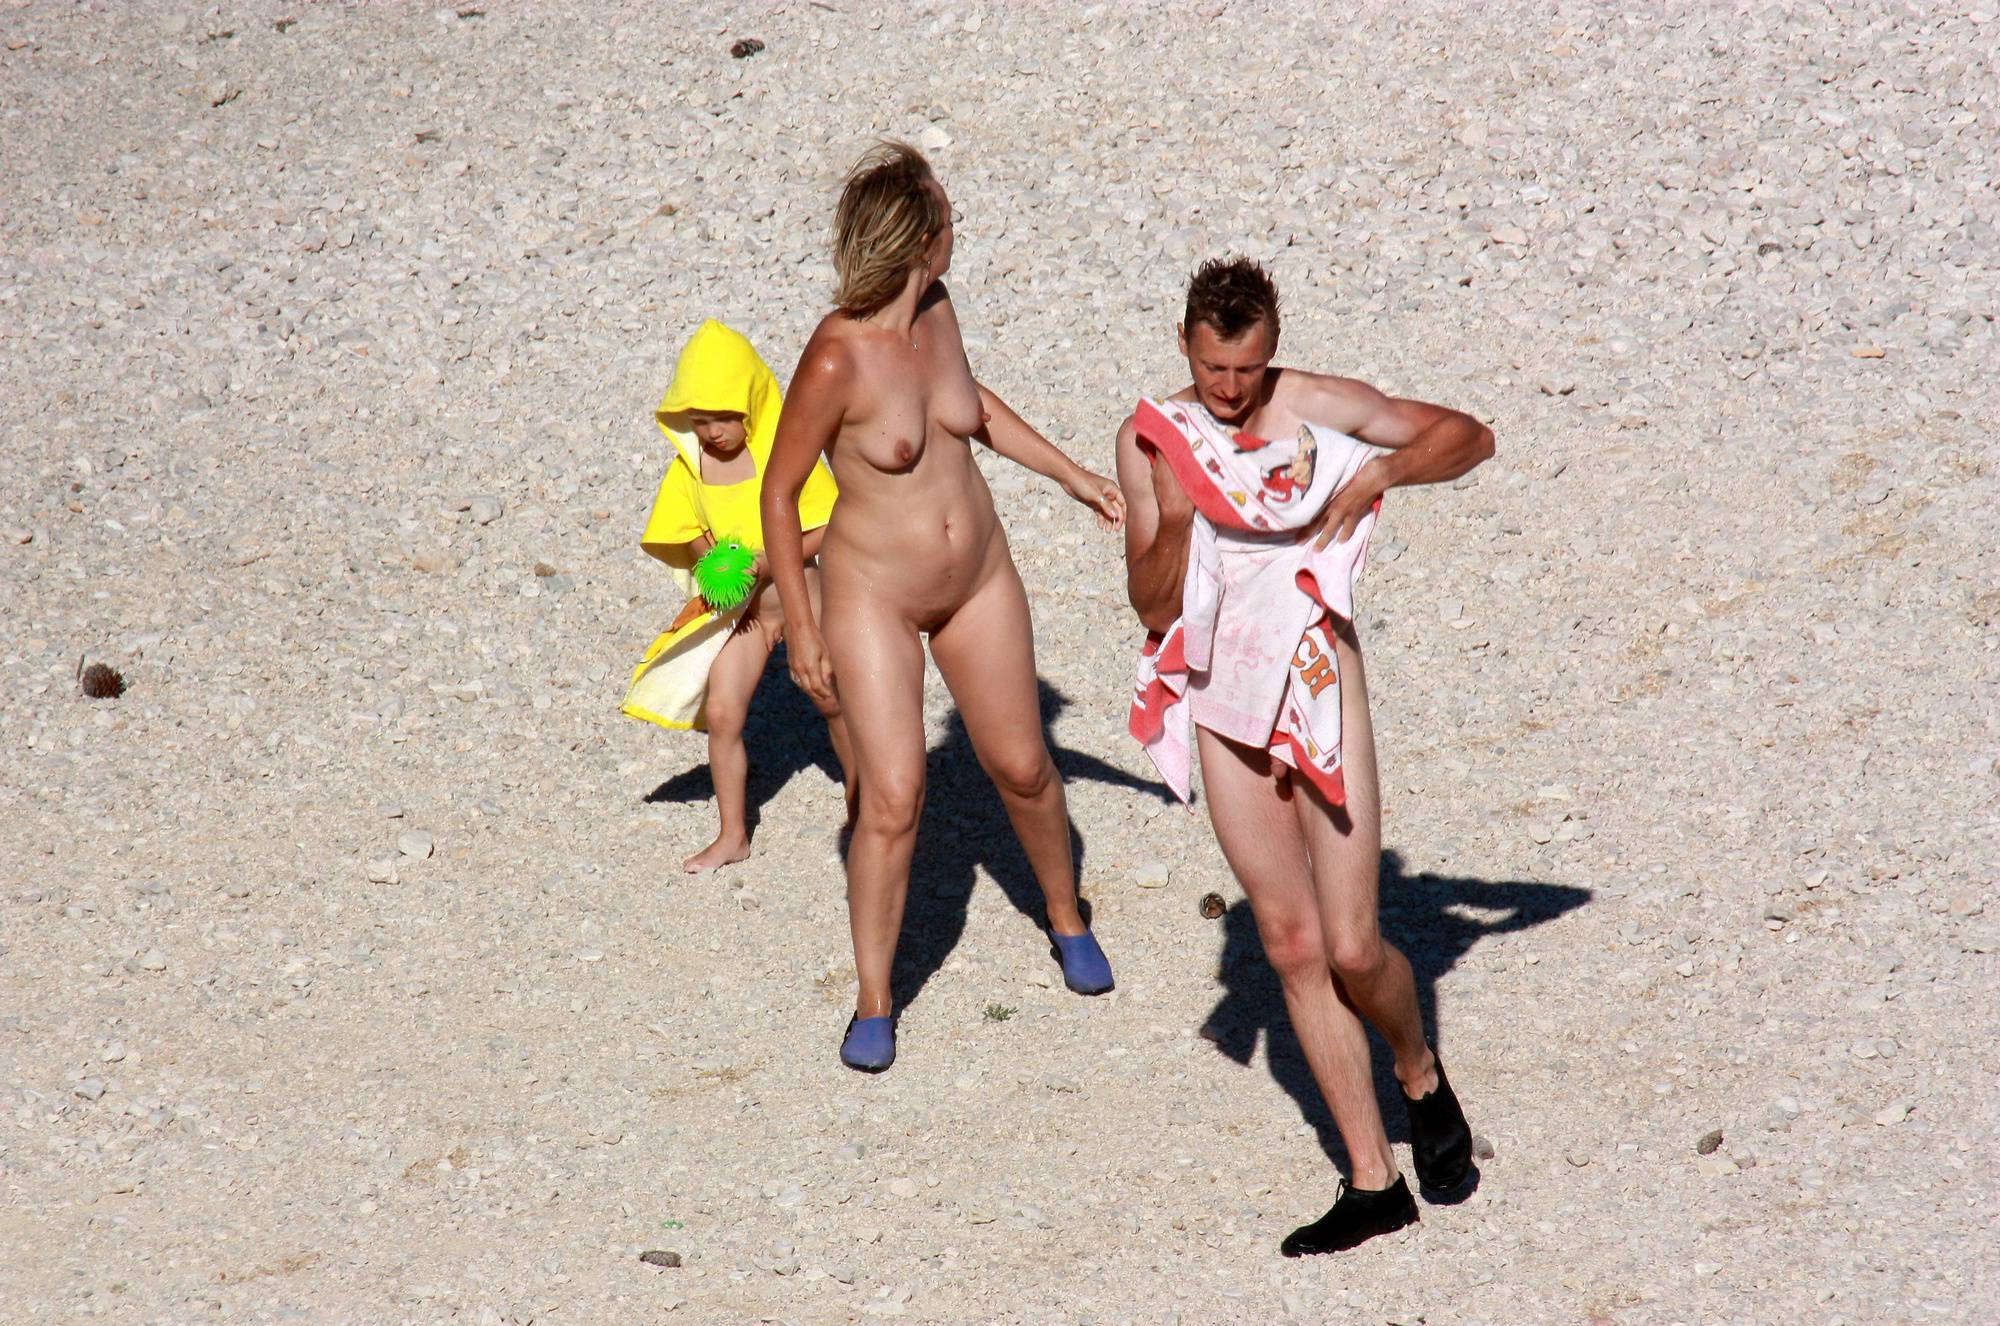 Naturist Family on Beach - 2